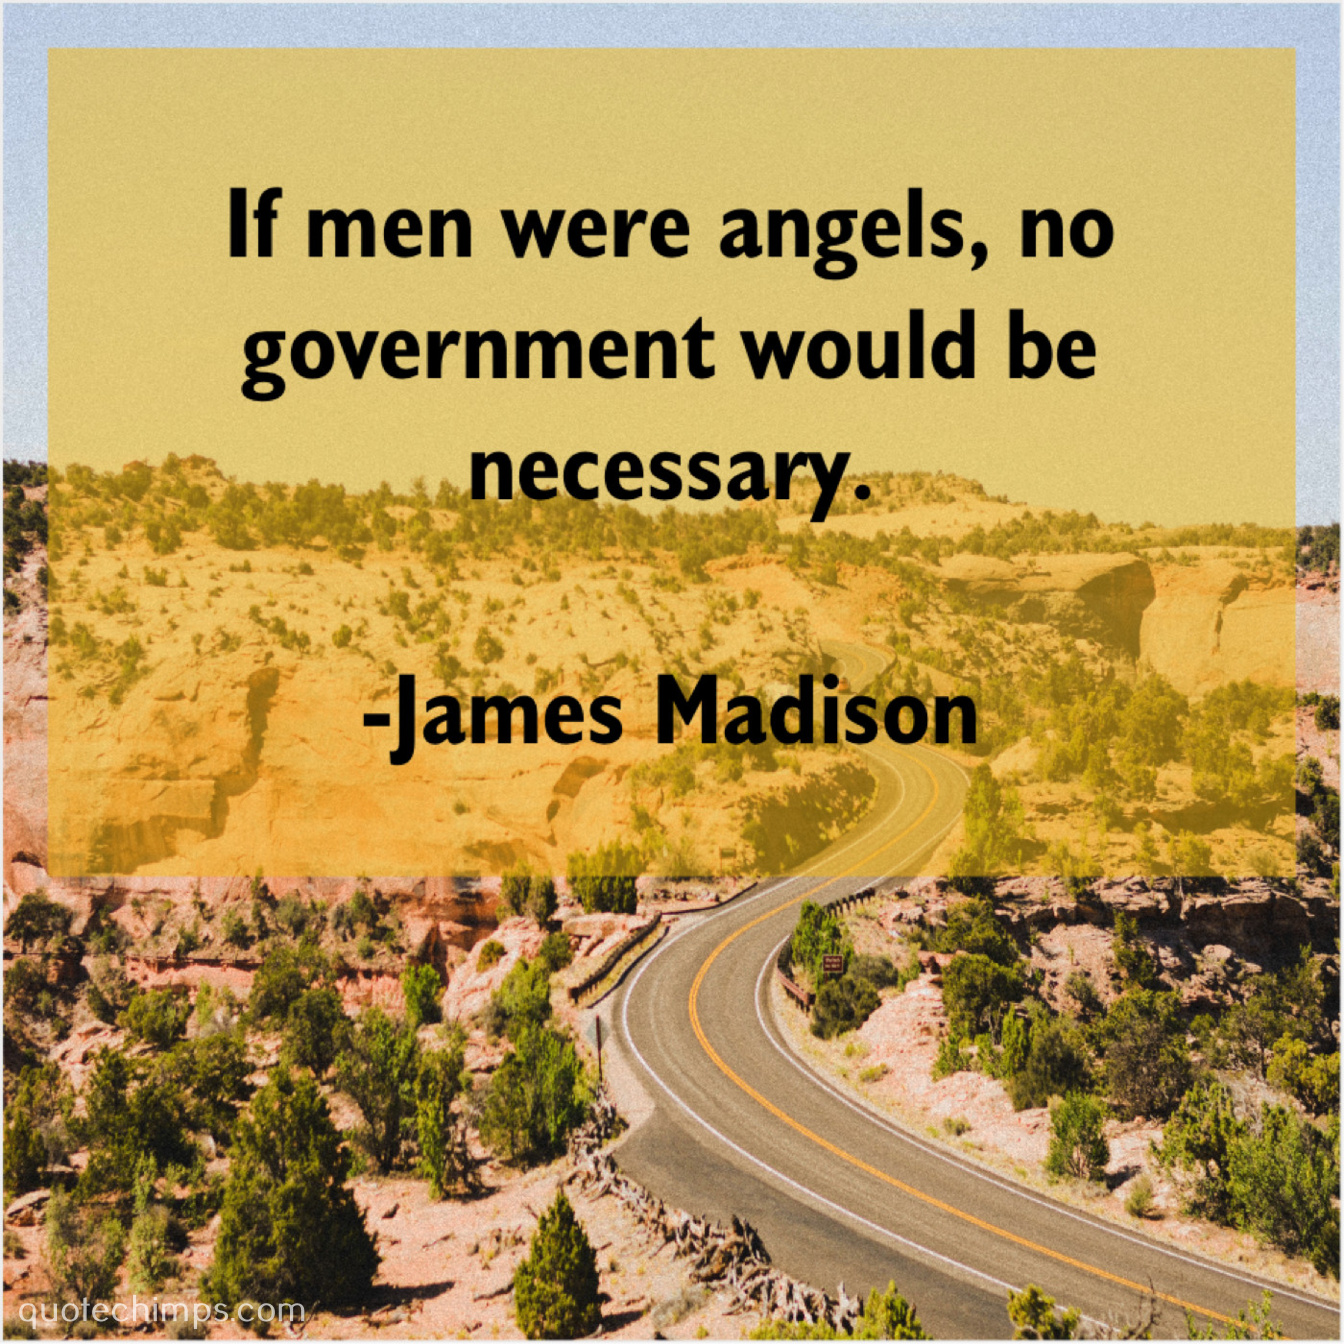 if all men were angels